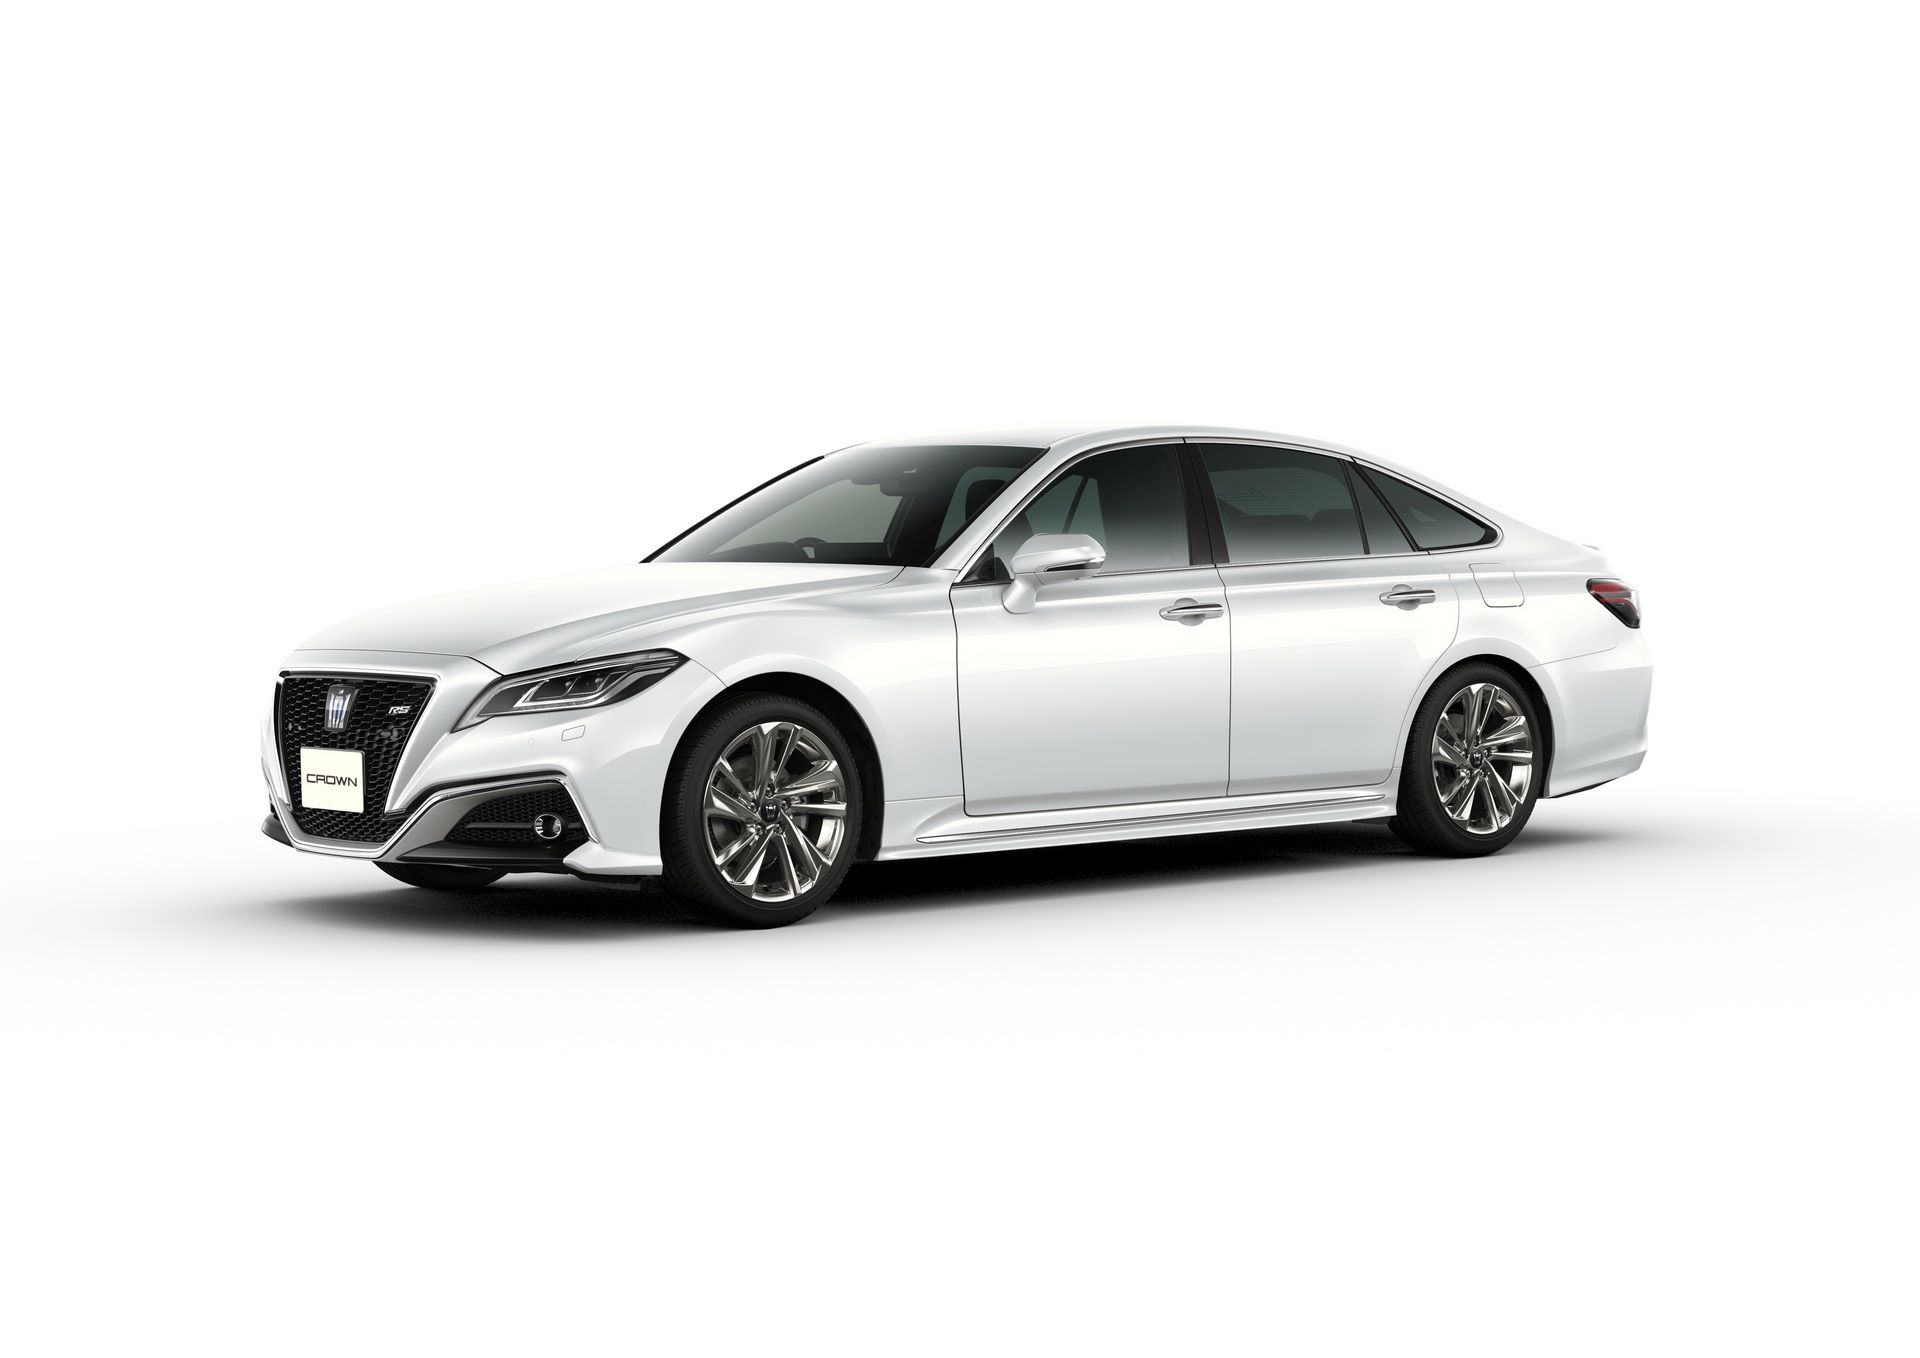 Toyota-Crown-2021-6